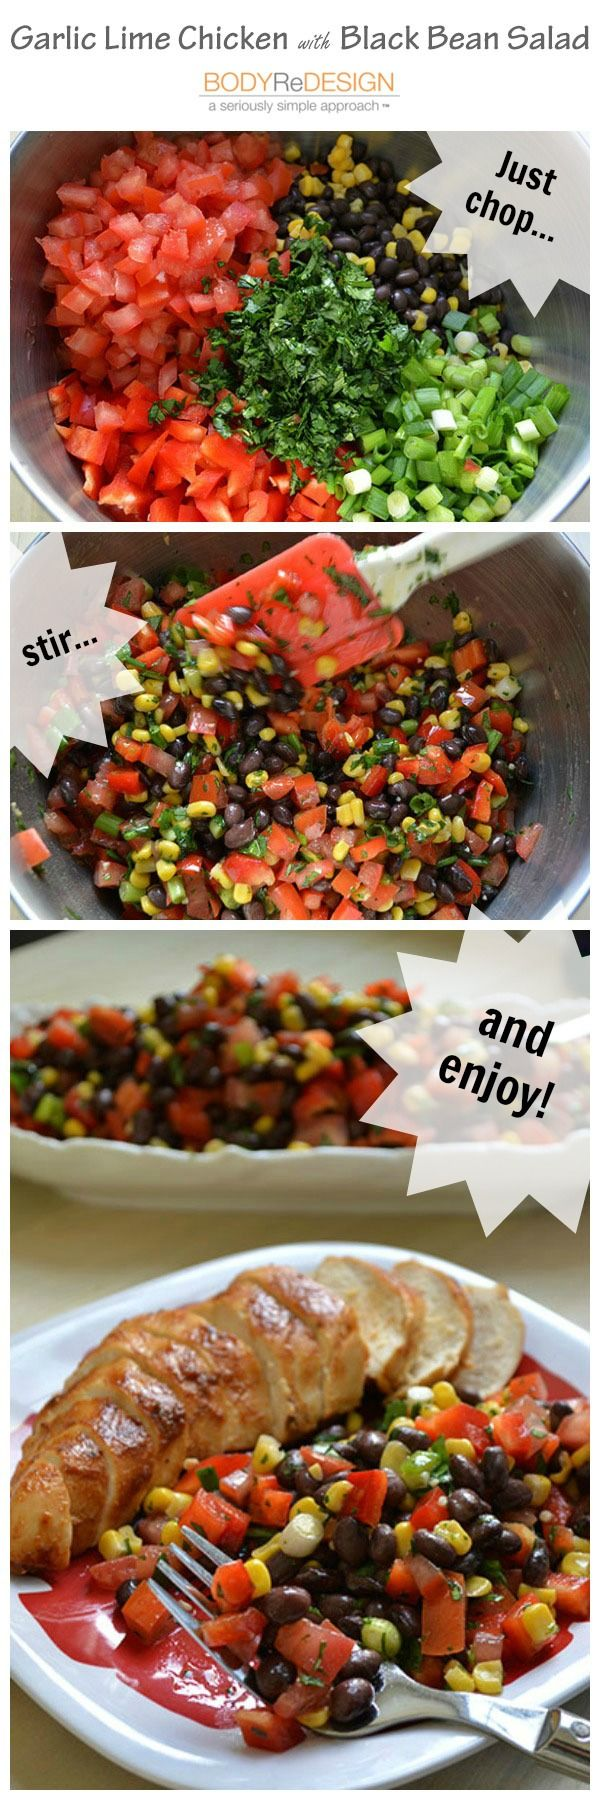 Black Bean and Corn Salad Recipe from https://bodyredesignonline.com/garlic-lime-chicken-with-black-bean-salad/